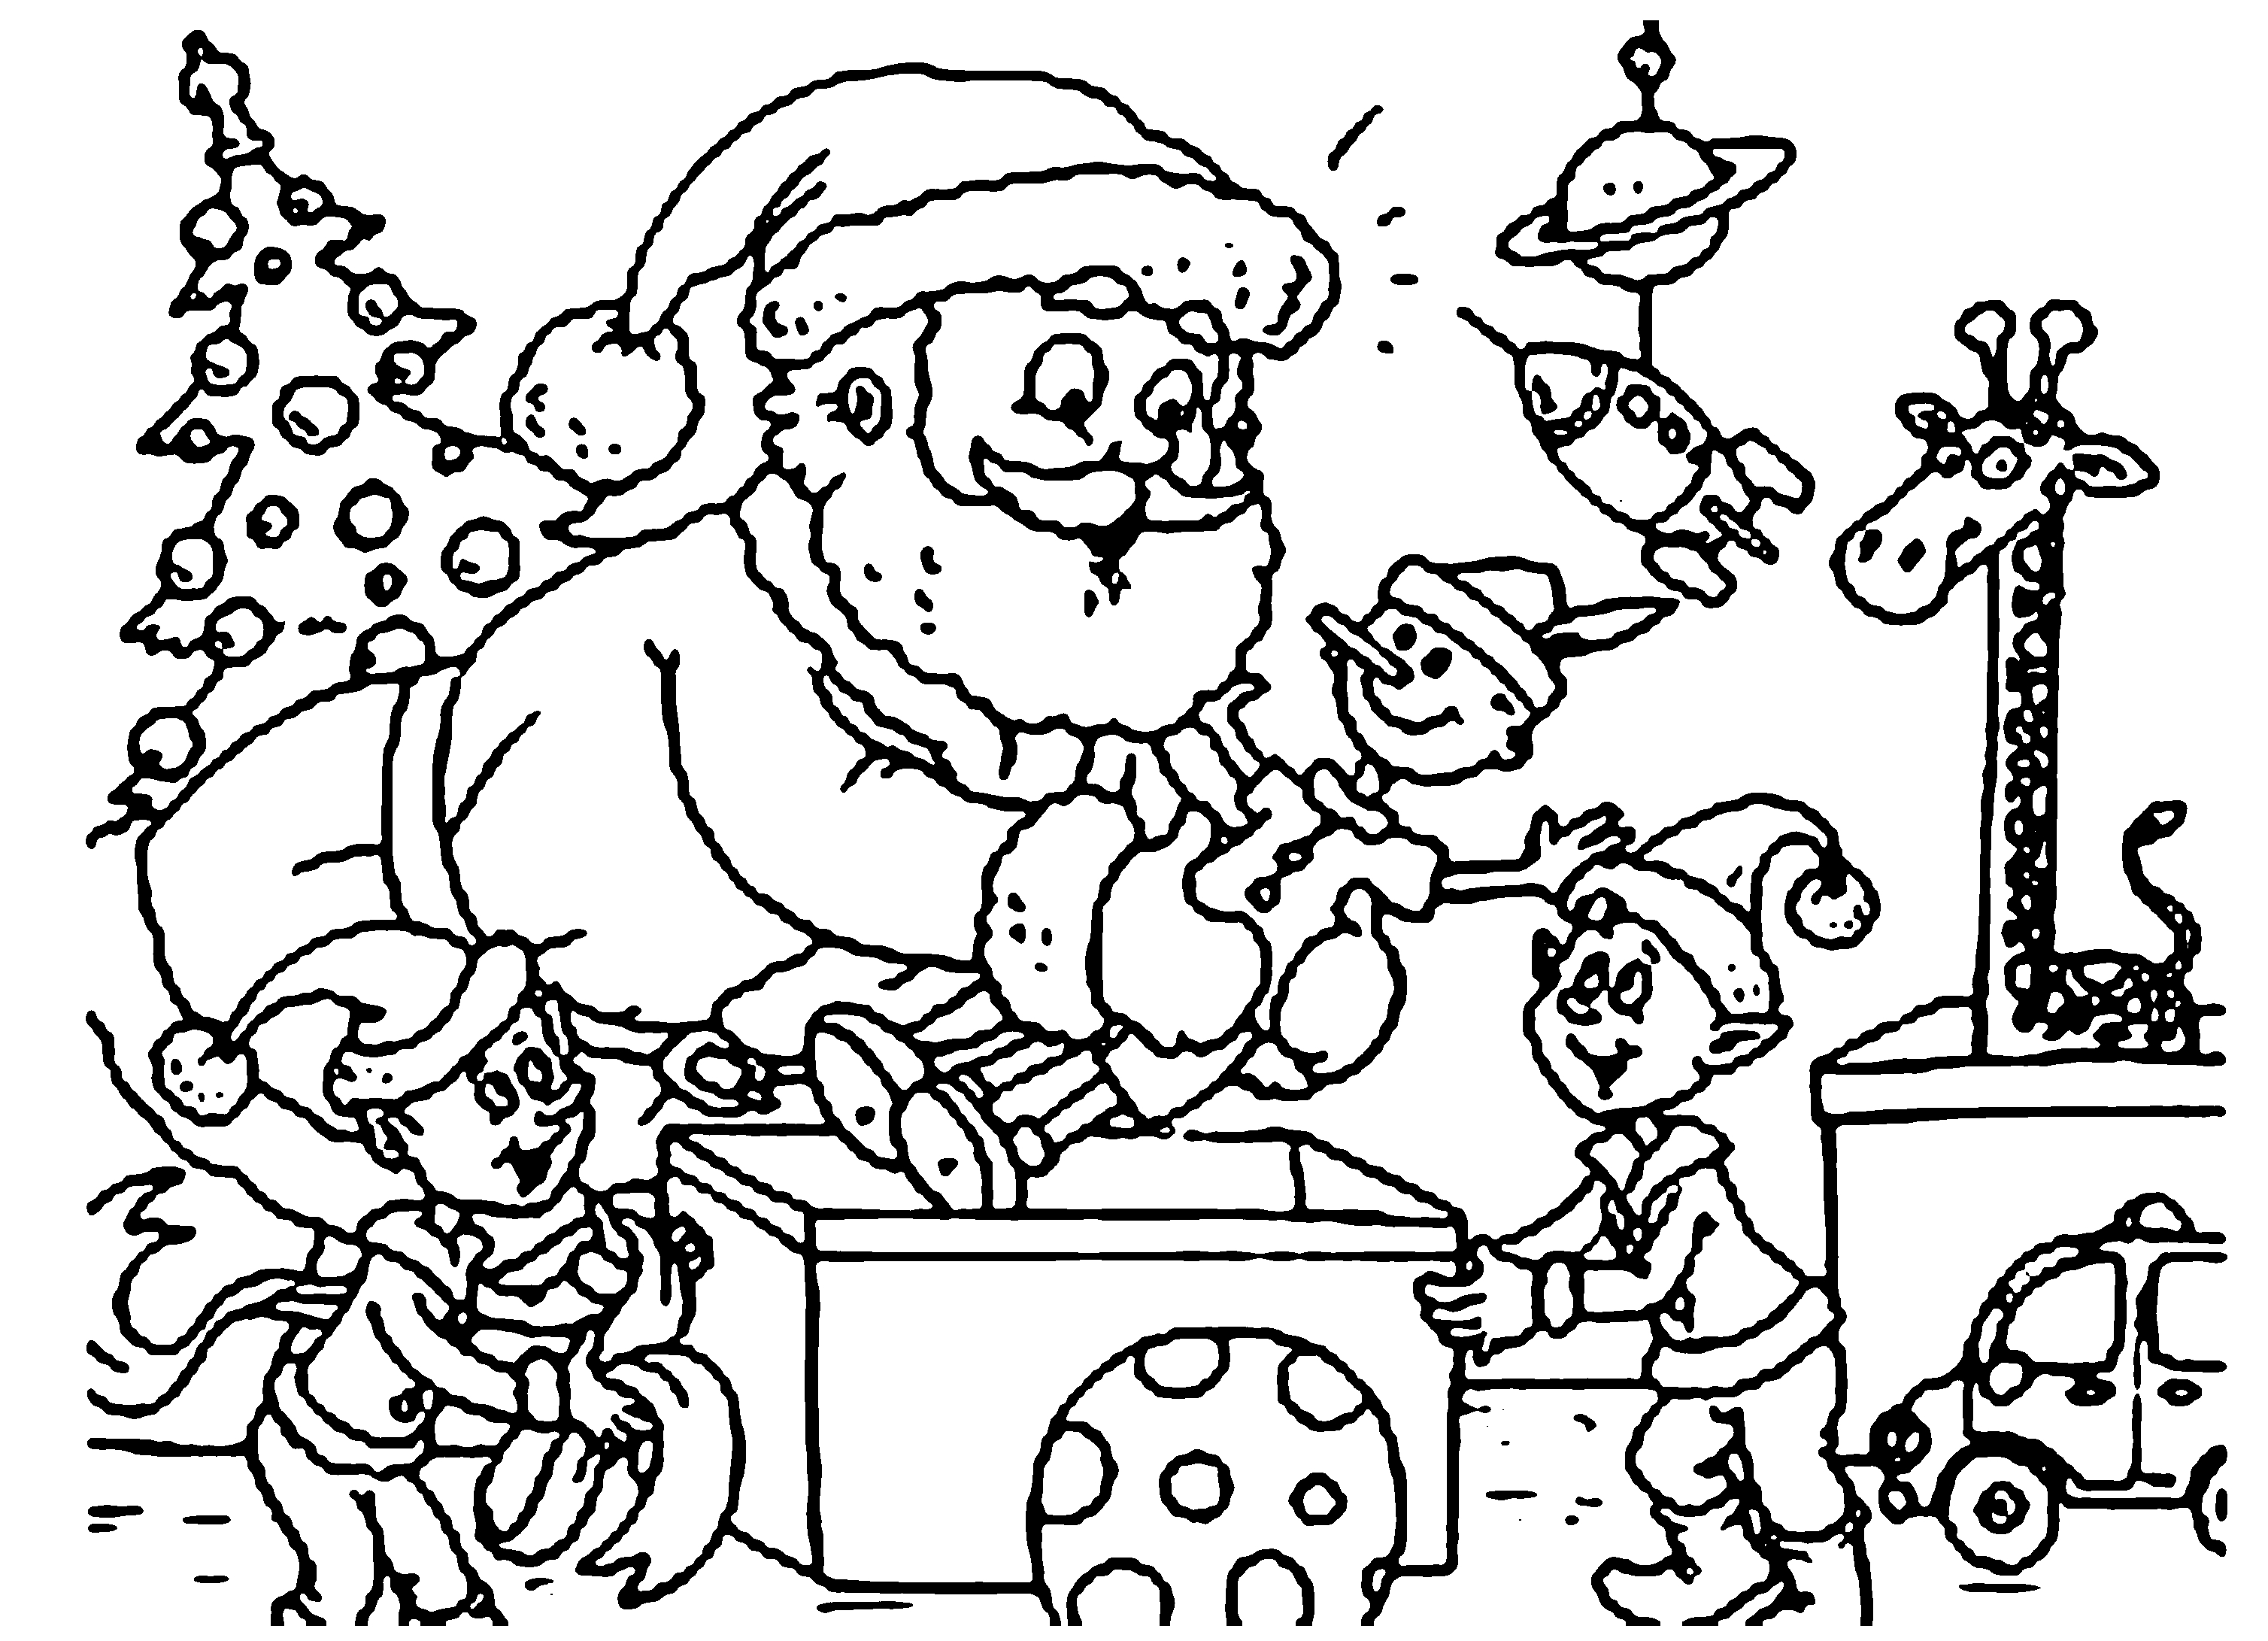 Santa Coloring Book Online With Awesome Cartoon Claus Pages Design Printable